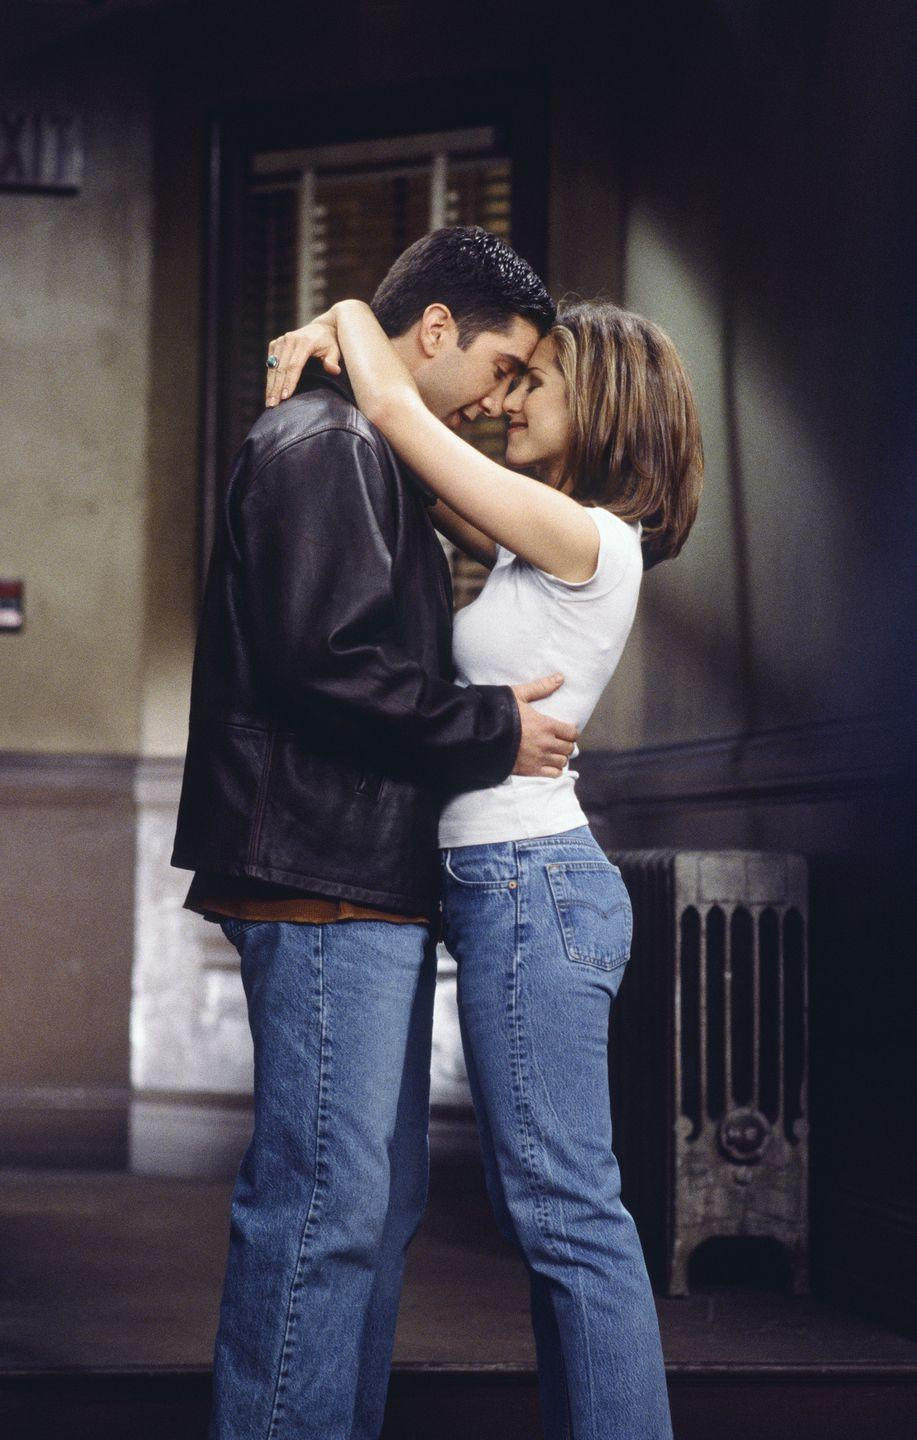 "<p>Rachel Green made the 1990s <a href=""https://www.seventeen.com/fashion/style-advice/a25752058/boyfriend-jeans-outfit/"" rel=""nofollow noopener"" target=""_blank"" data-ylk=""slk:mom jean"" class=""link rapid-noclick-resp"">mom jean</a> famous and she's never looked better. Try tucking in a fitted white tee for that laid-back weekend type of vibe.</p><p><strong>What you'll need:</strong> <em>Wedgie Icon Fit, $98, Levi's</em></p><p><a class=""link rapid-noclick-resp"" href=""https://go.redirectingat.com?id=74968X1596630&url=https%3A%2F%2Fwww.revolve.com%2Fr%2FDisplayProduct.jsp%3FaliasURL%3Dlevis-wedgie-icon-fit-in-shut-up%252Fdp%252FLEIV-WJ93%26d%3DF%26countrycode%3DUS%26_cclid%3DGoogle_Cj0KCQjwuZDtBRDvARIsAPXFx3Adk4KG4x7MXzYB3pX-UTEGLsUe-xpoECkm73Wu1xBD2N4exLEt1-YaAp1OEALw_wcB%26gclid%3DCj0KCQjwuZDtBRDvARIsAPXFx3Adk4KG4x7MXzYB3pX-UTEGLsUe-xpoECkm73Wu1xBD2N4exLEt1-YaAp1OEALw_wcB%26product%3DLEIV-WJ93&sref=https%3A%2F%2Fwww.seventeen.com%2Ffashion%2Fceleb-fashion%2Fg29439613%2Frachel-green-outfits-friends%2F"" rel=""nofollow noopener"" target=""_blank"" data-ylk=""slk:SHOP NOW"">SHOP NOW</a></p>"